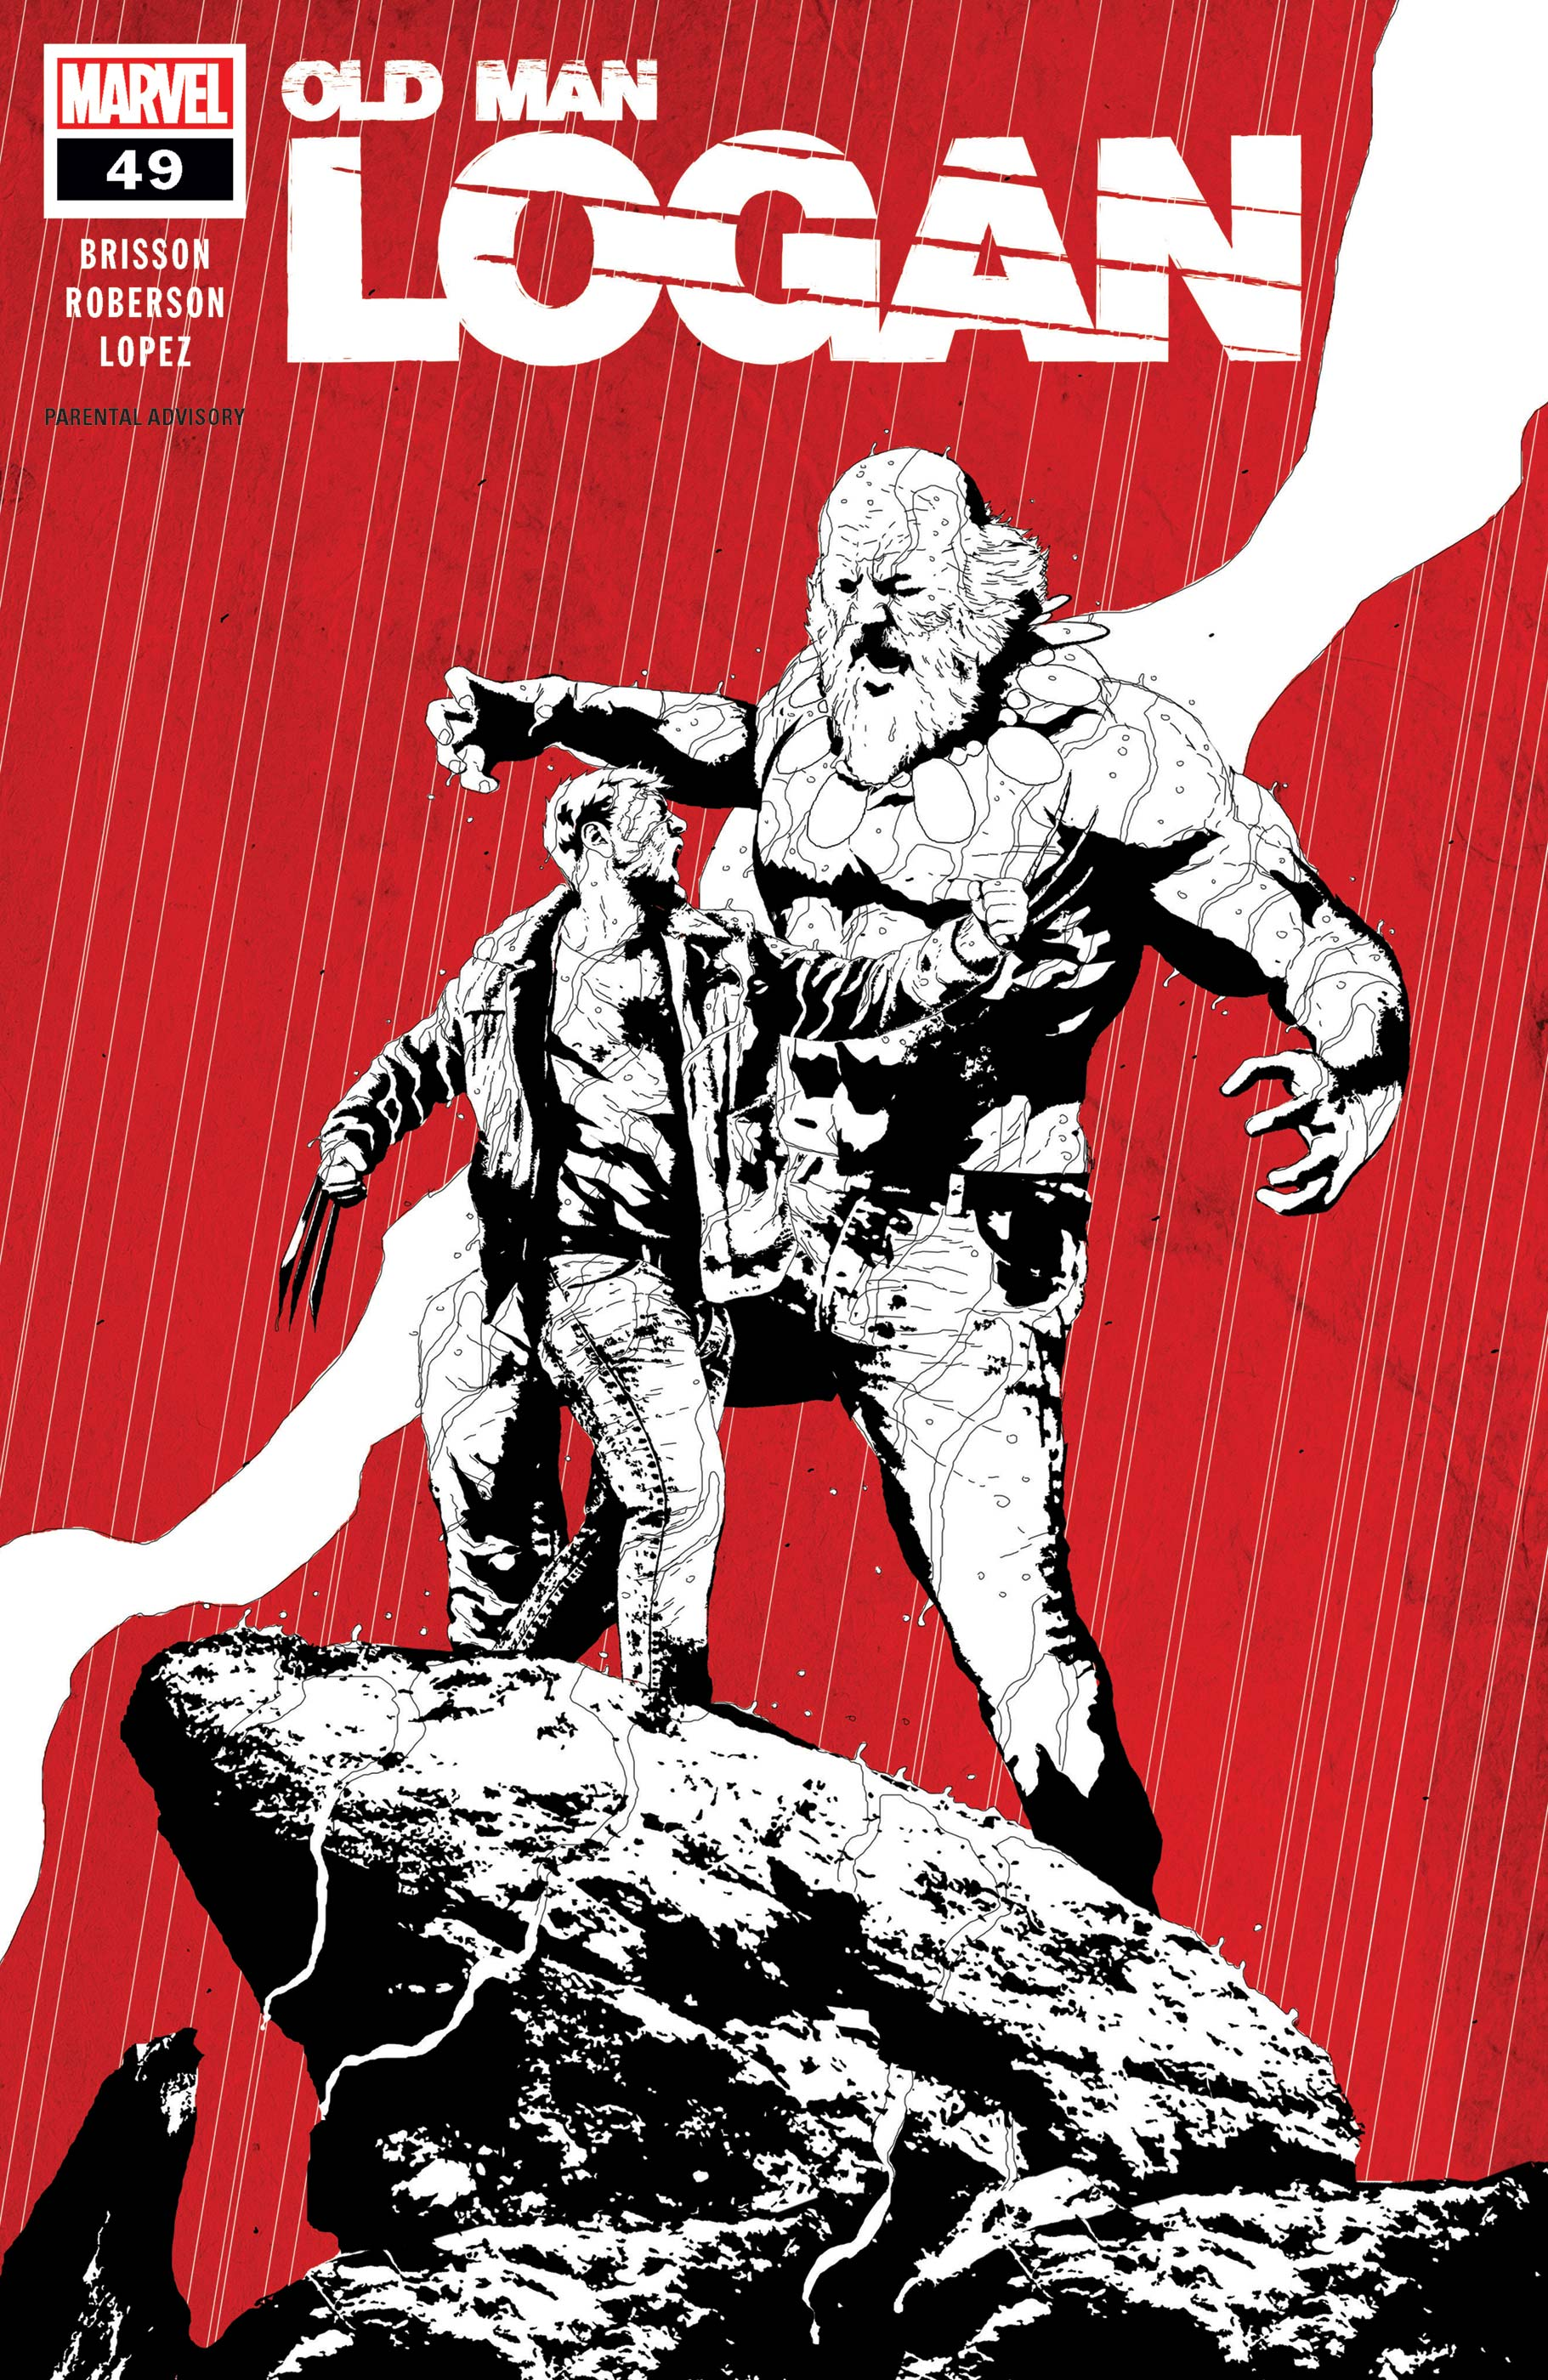 Old Man Logan (2016) #49